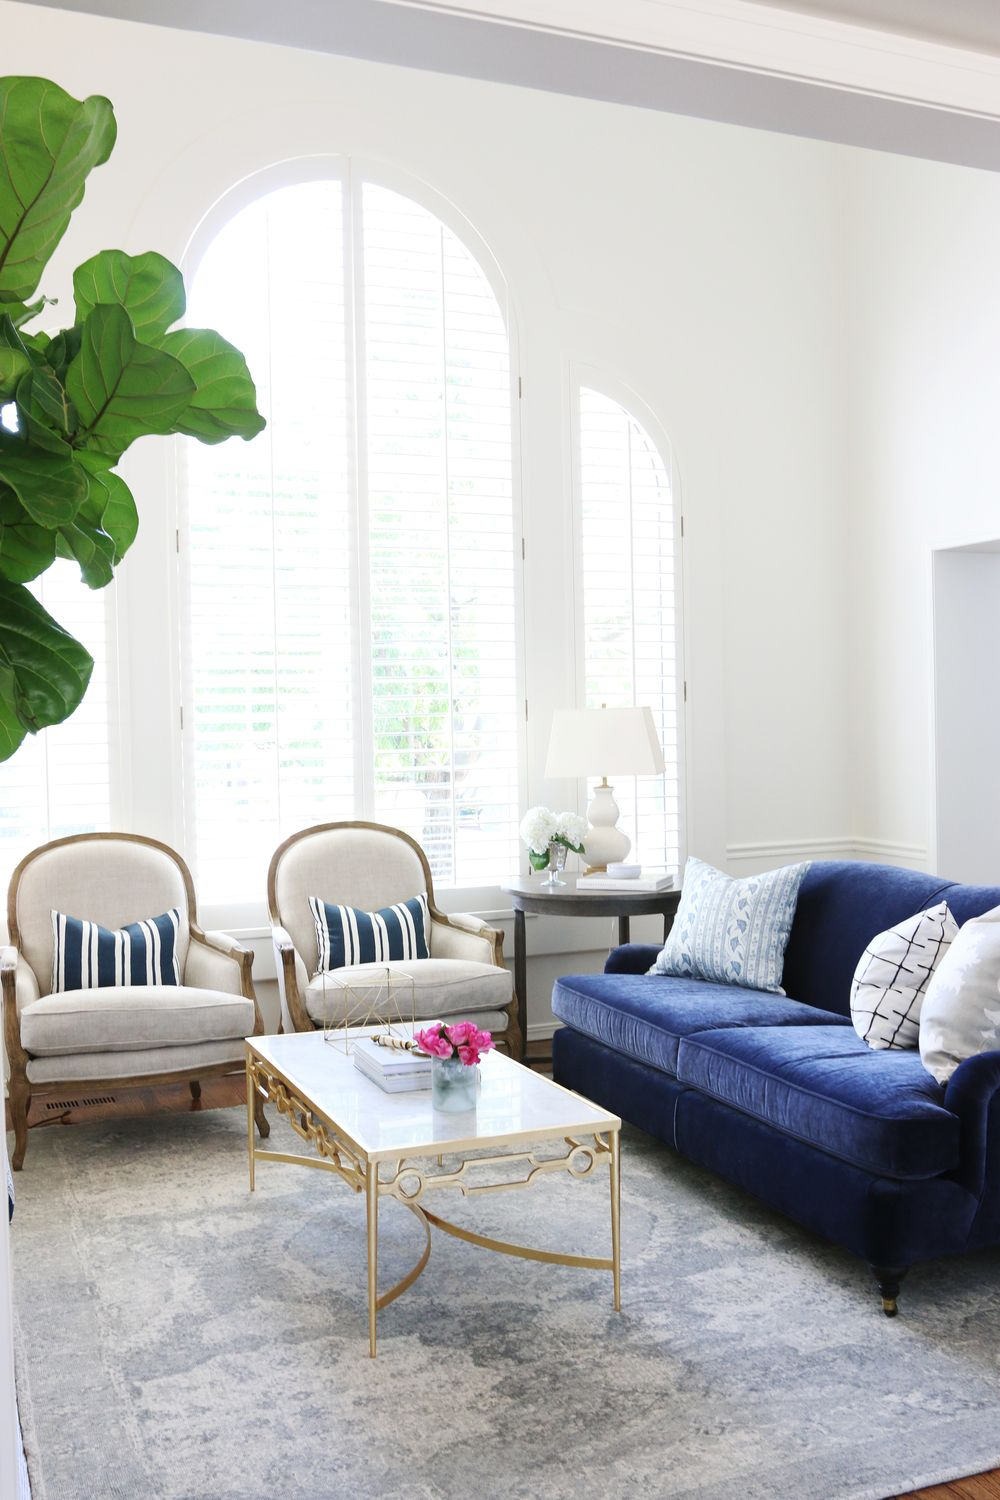 Living Room Makeover: Ryan Park Project | Studio mcgee, Living rooms ...